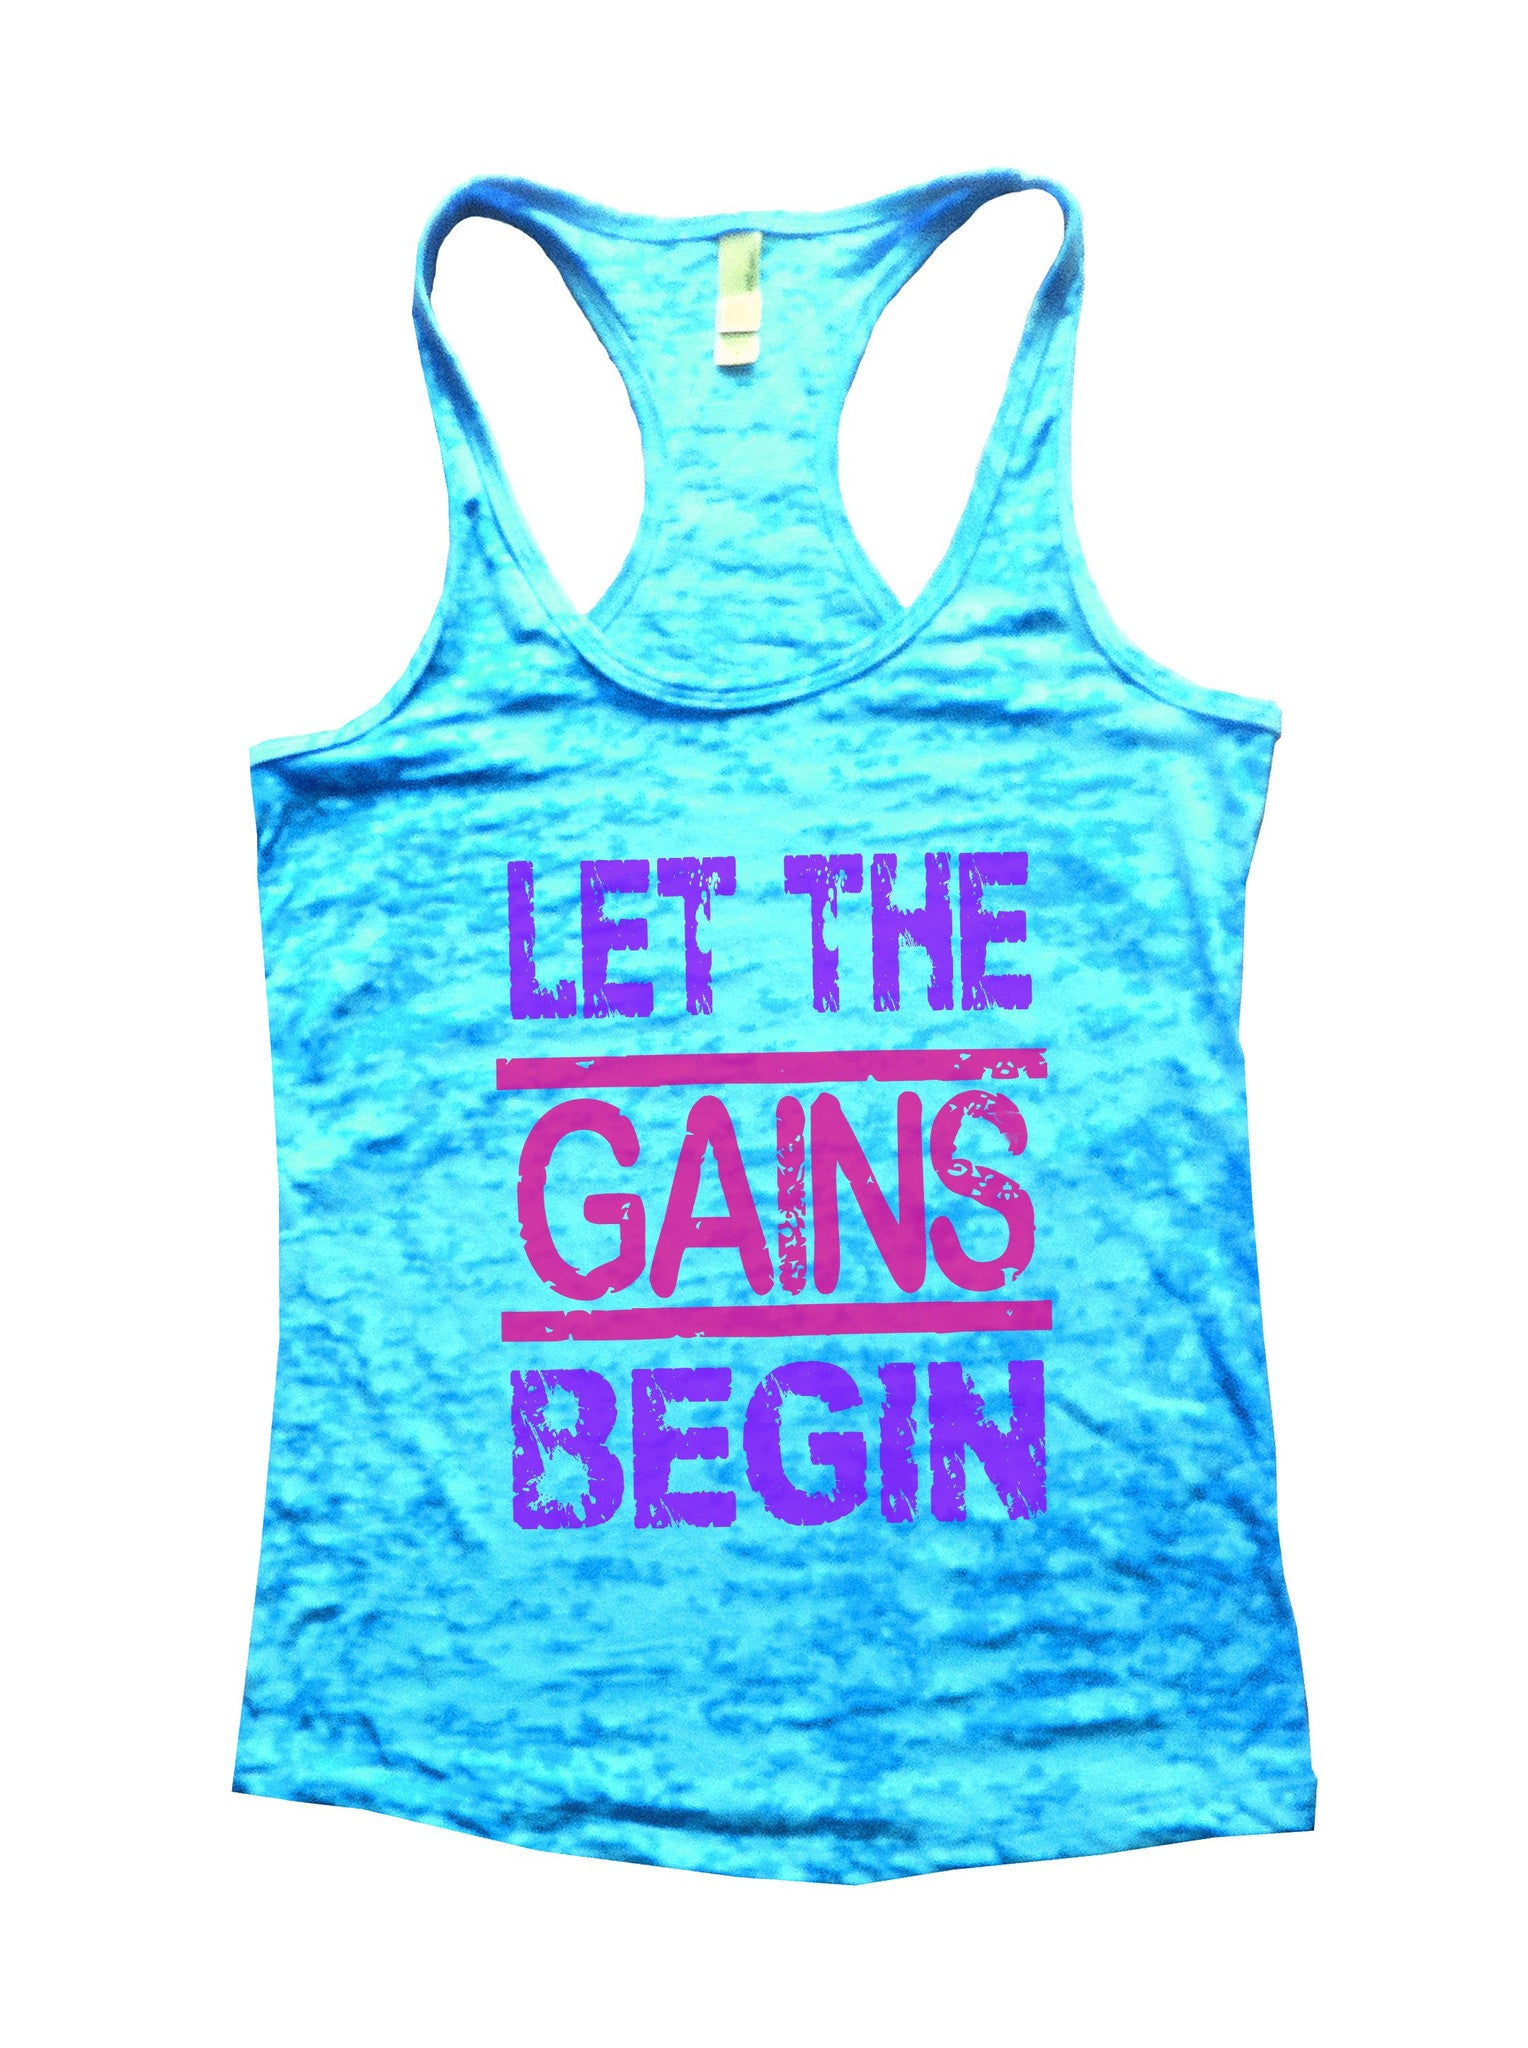 Let The Gains Begin Burnout Tank Top By BurnoutTankTops.com - 540 - Funny Shirts Tank Tops Burnouts and Triblends  - 4